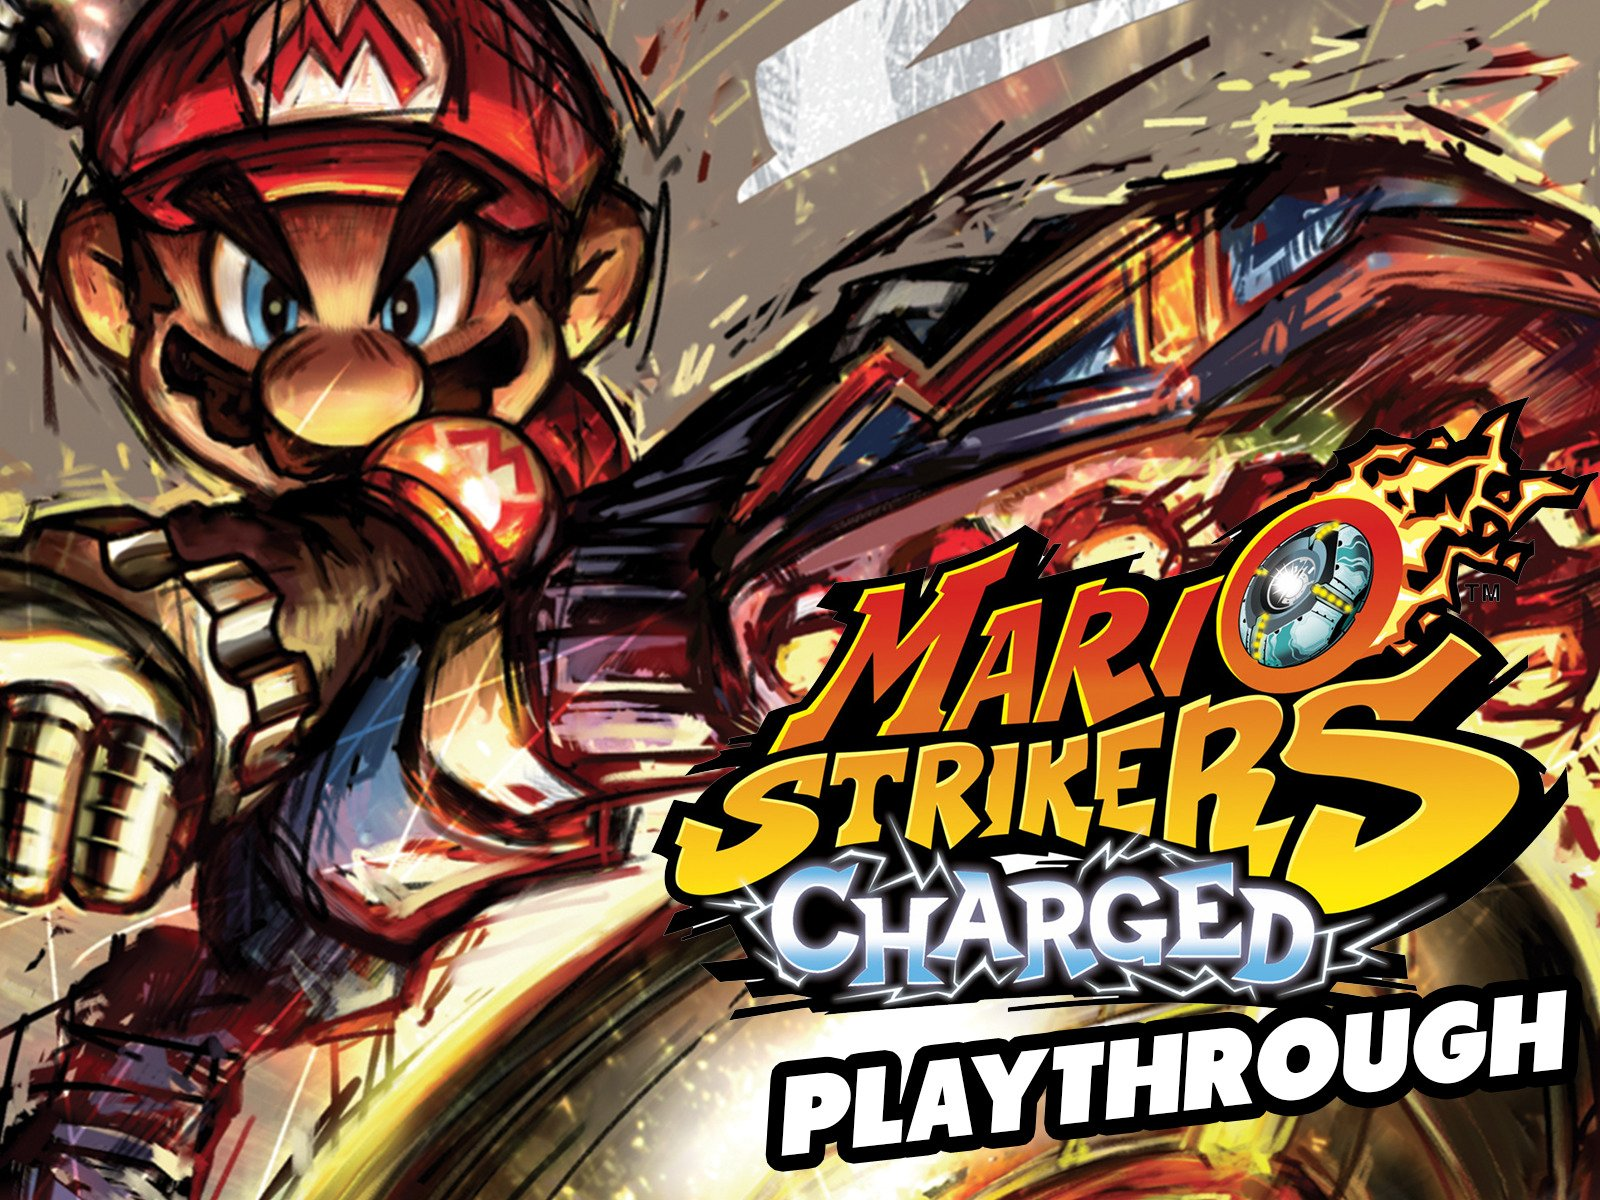 Clip: Mario Strikers Charged Playthrough - Season 1